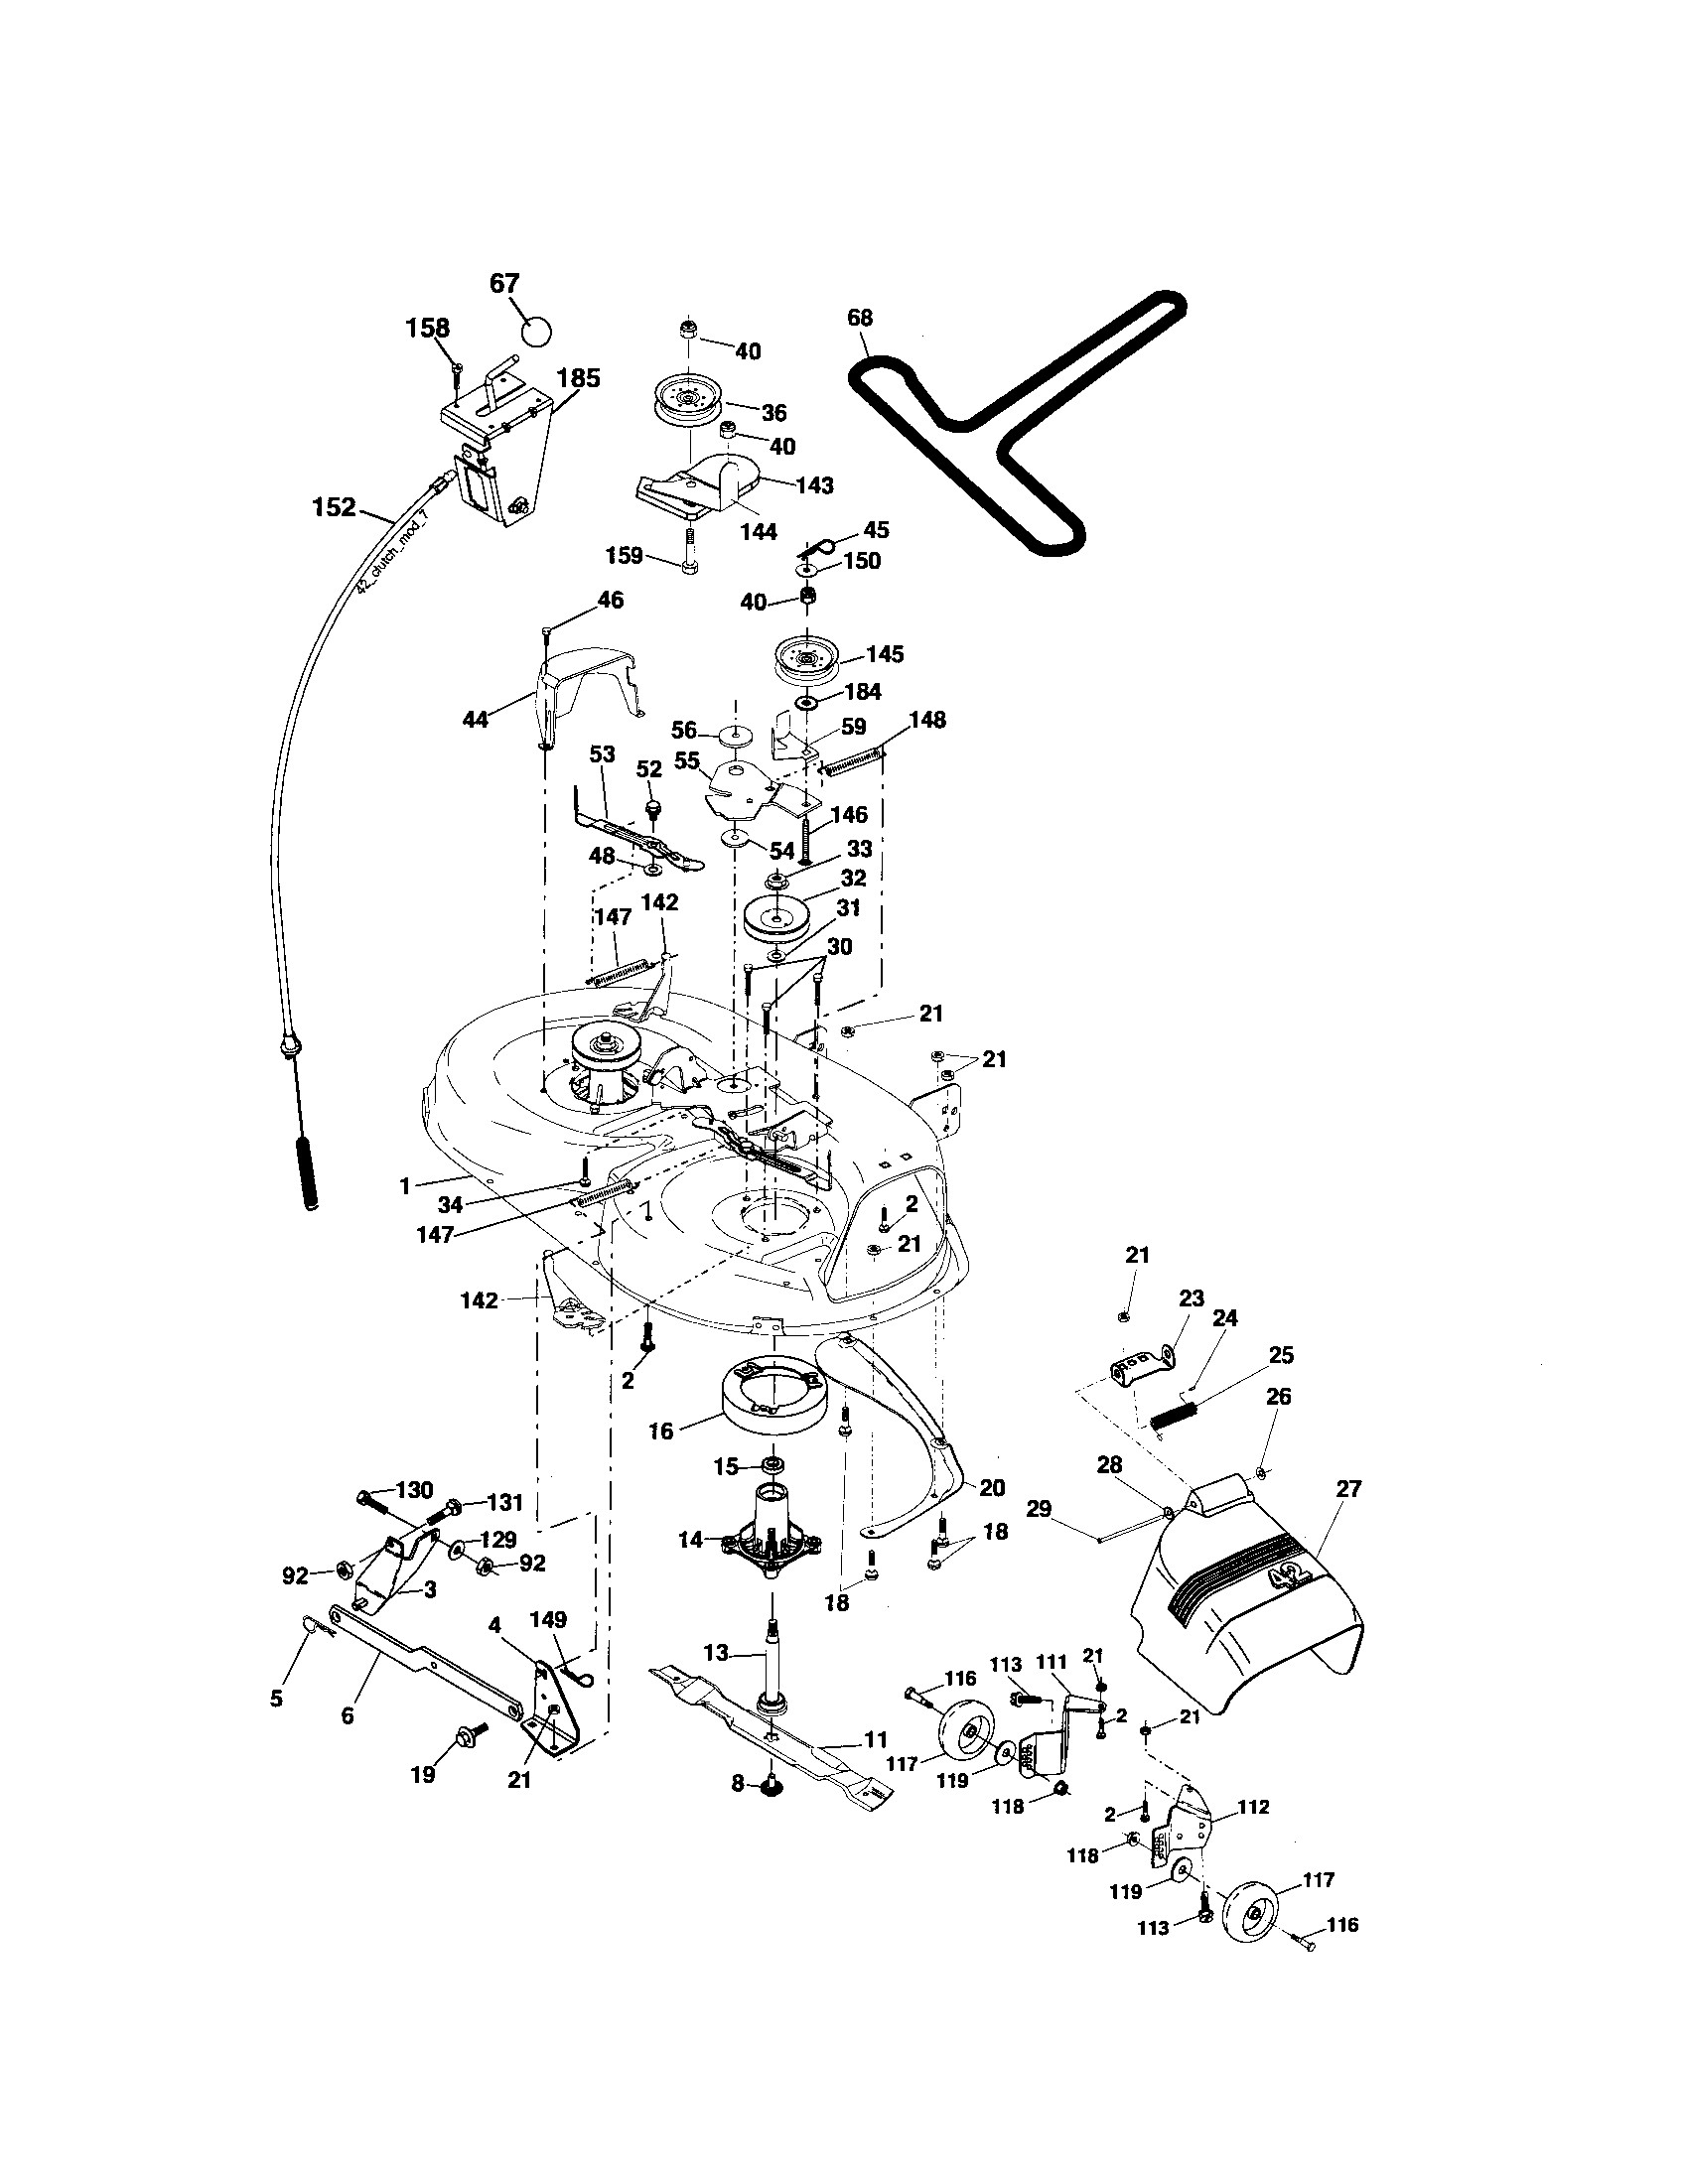 Craftsman Ltx 1000 Parts Diagram Looking for Craftsman Model Front Engine Lawn Tractor